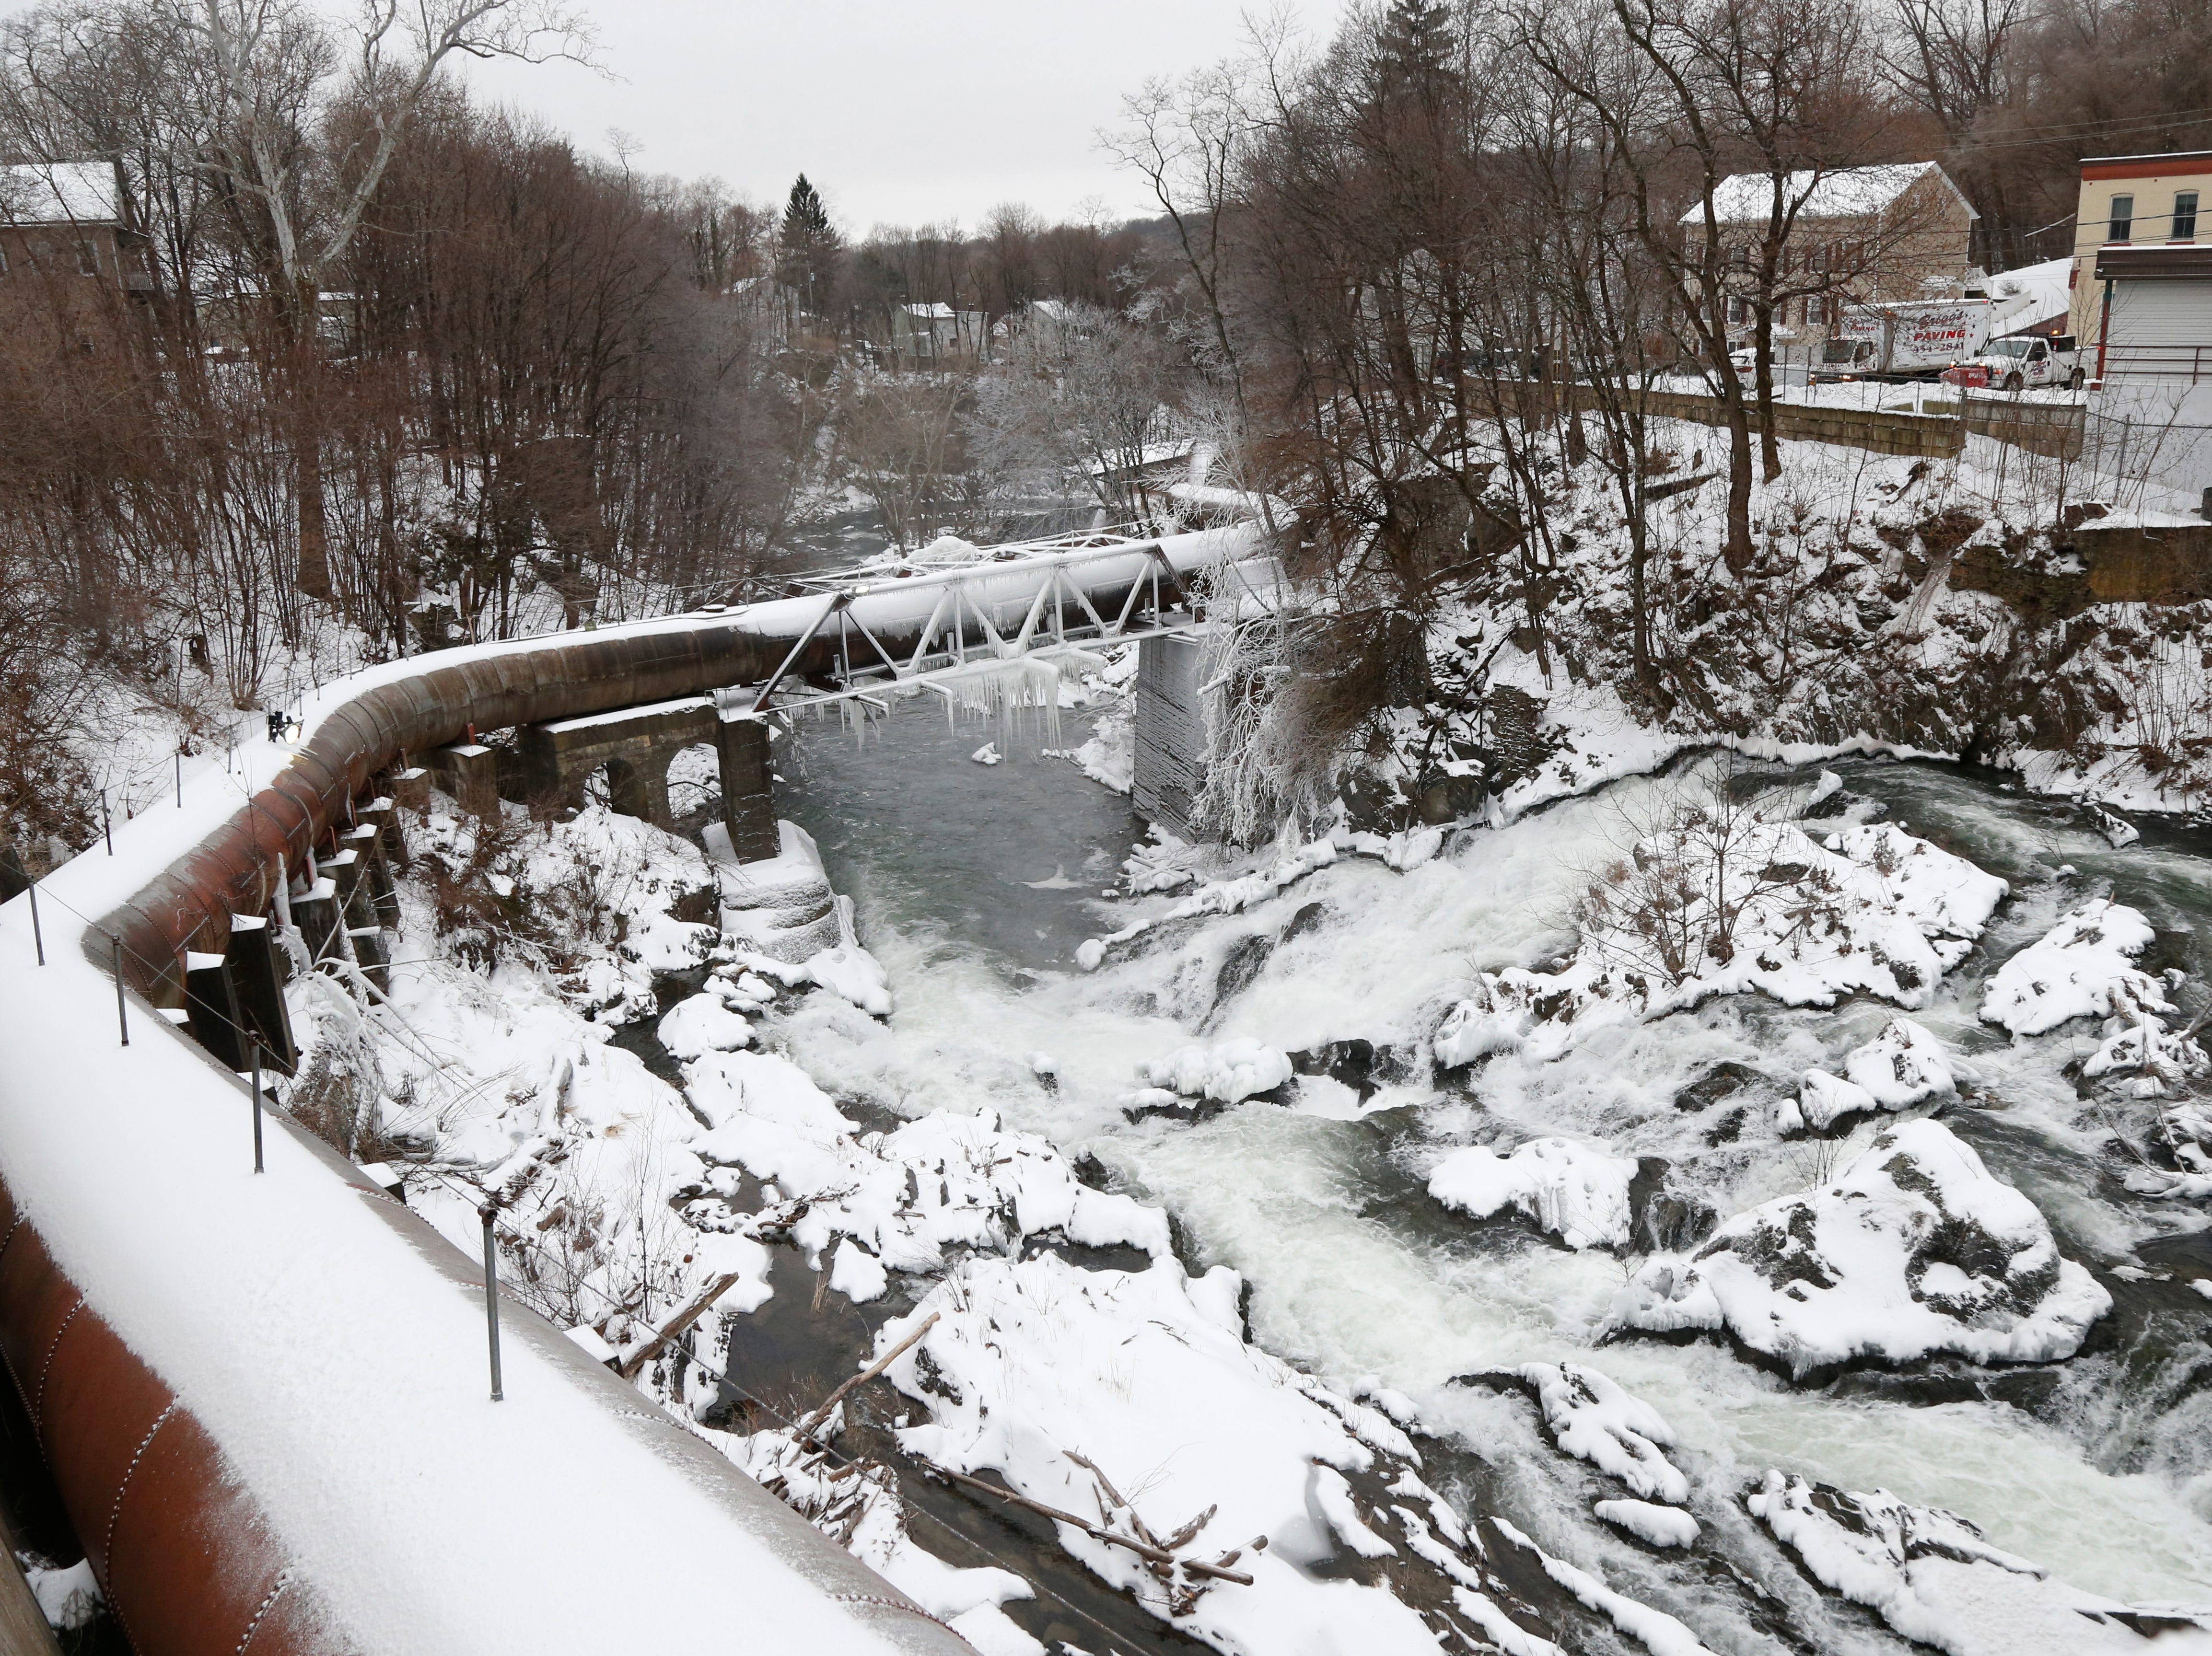 A partially frozen Wappingers Falls on January 20, 2019.